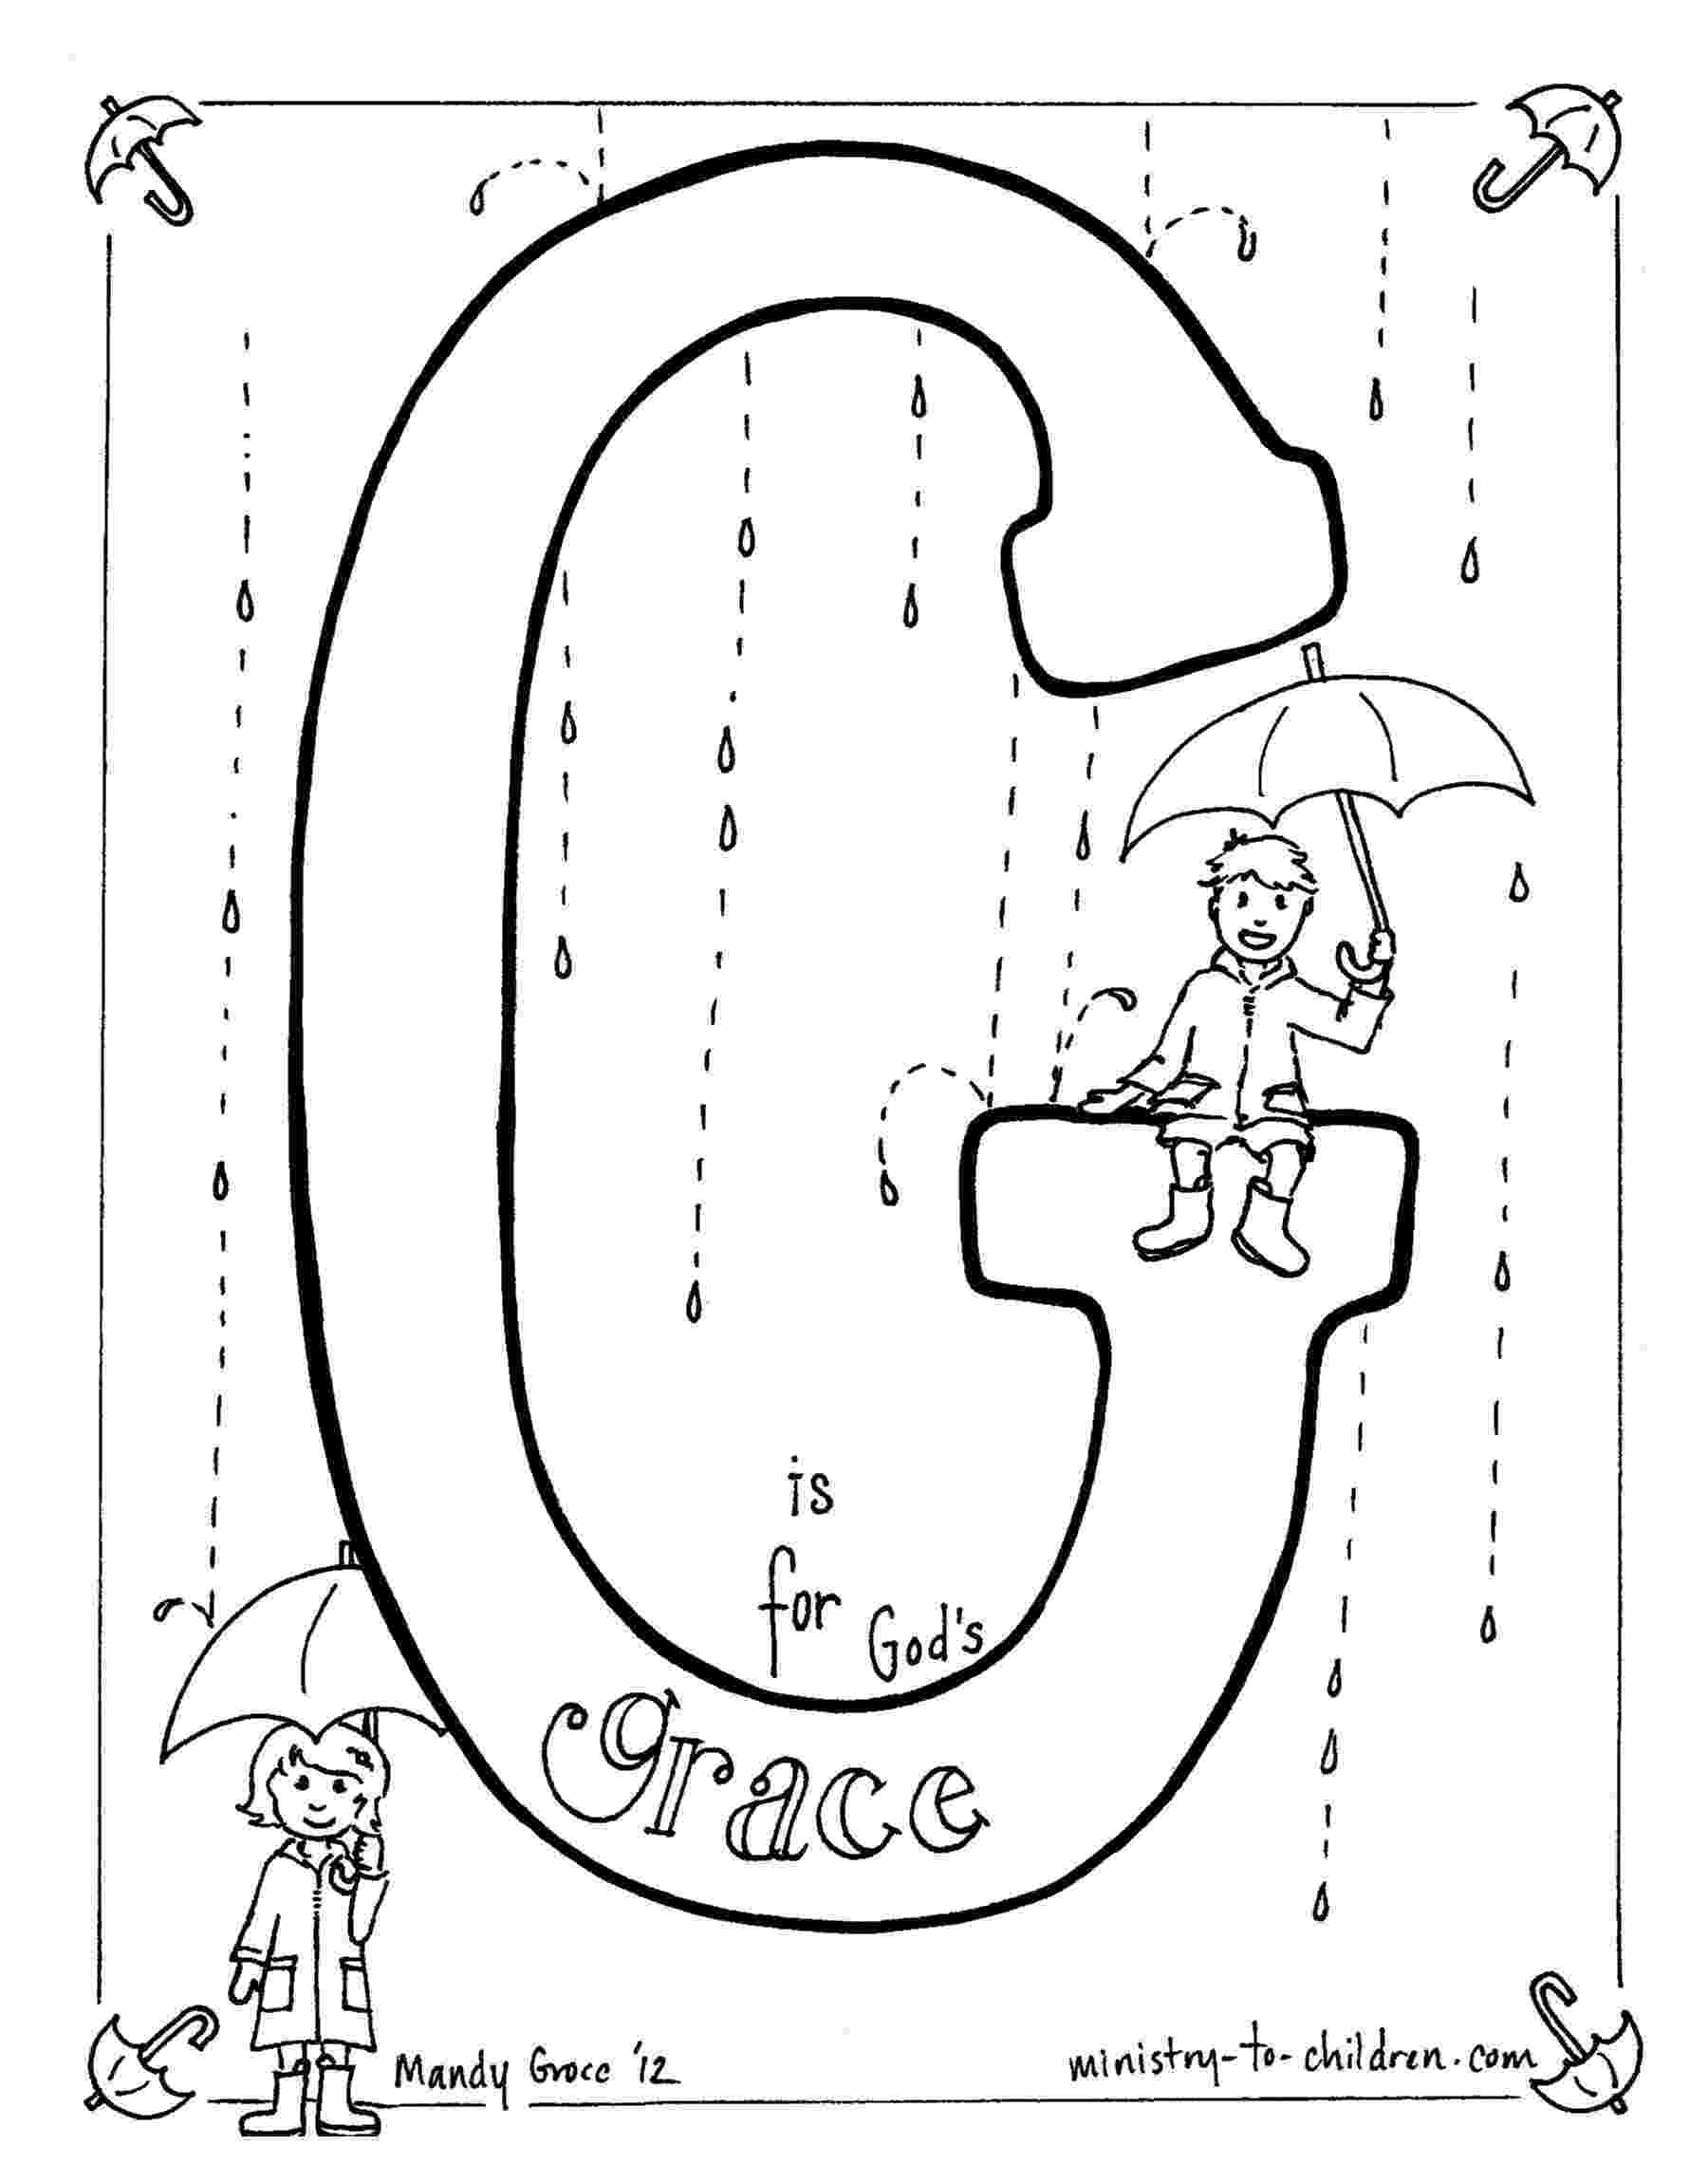 childrens colouring pages alphabet english alphabet coloring pages judy havrilla colouring childrens alphabet pages